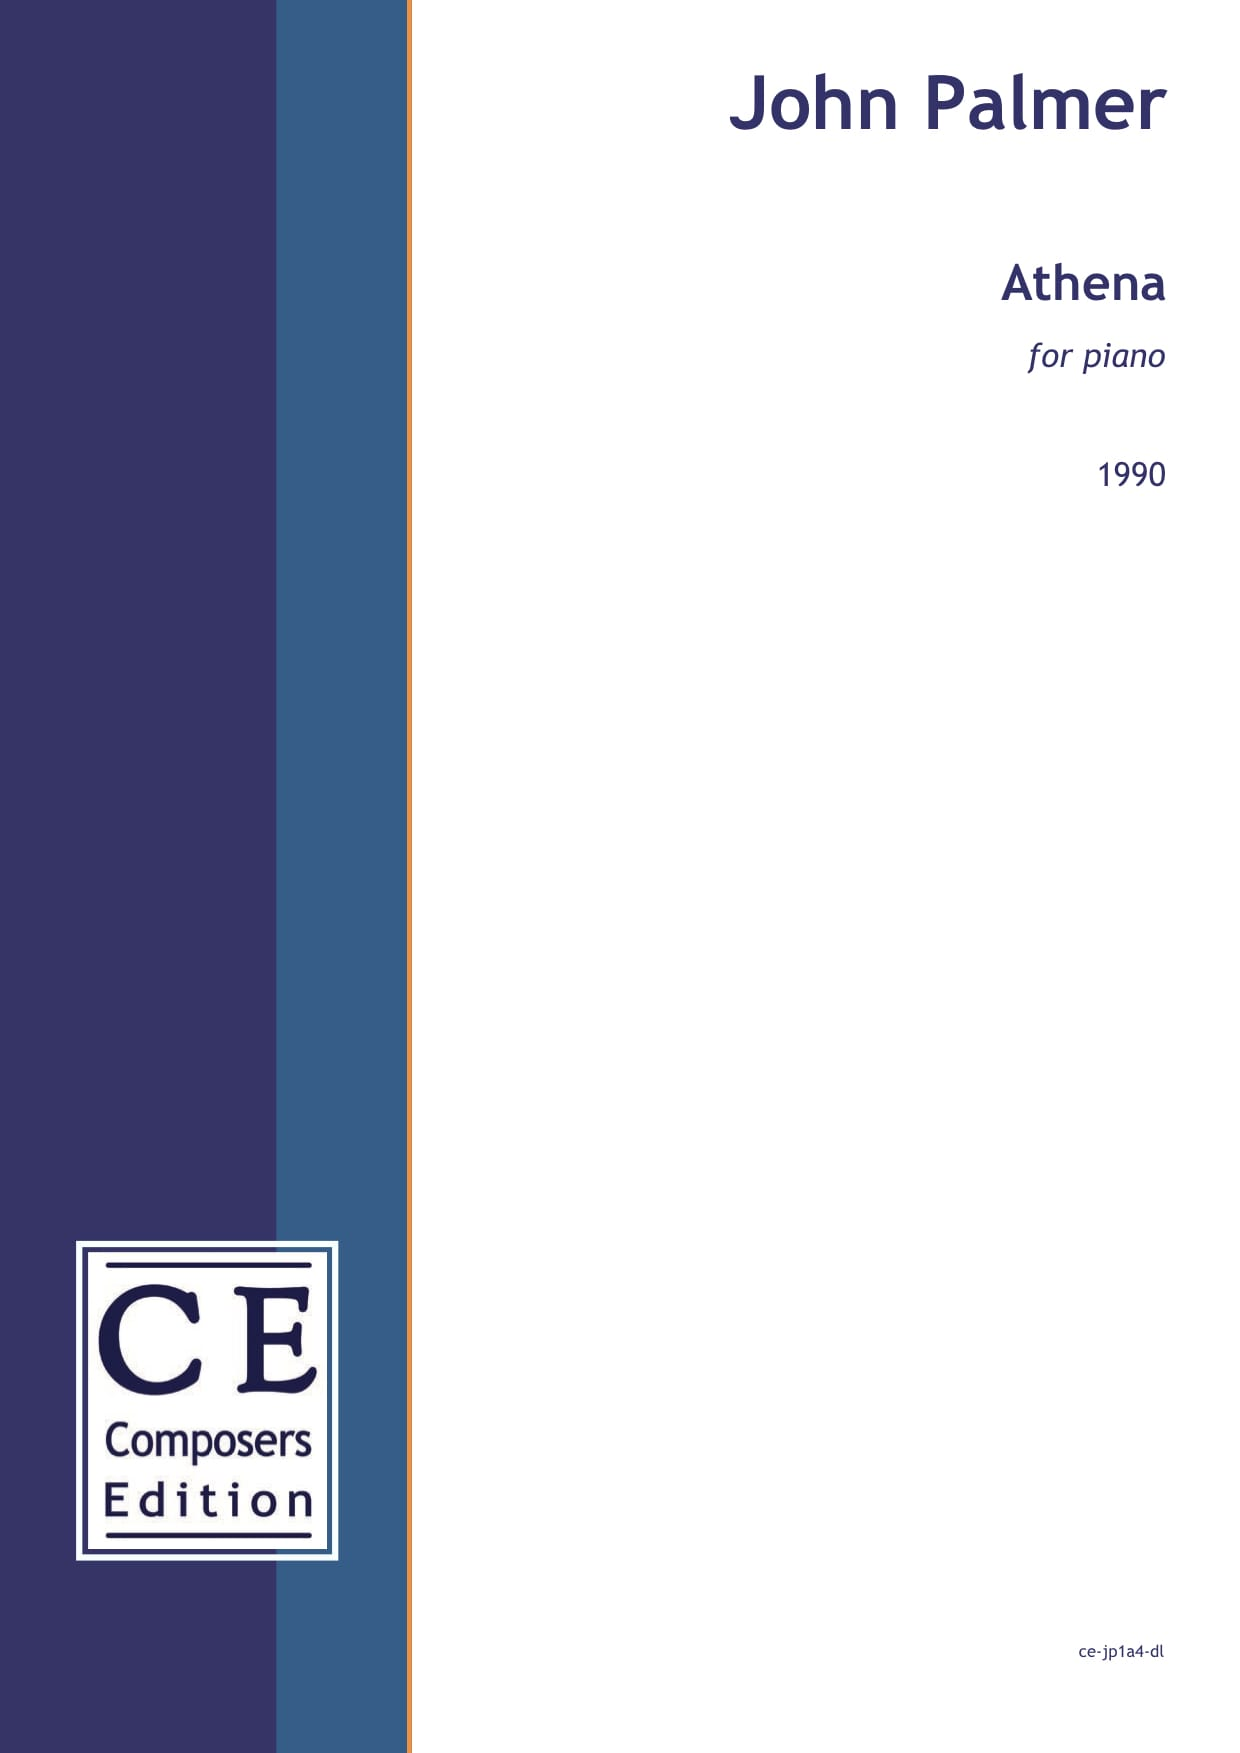 John Palmer: Athena for piano